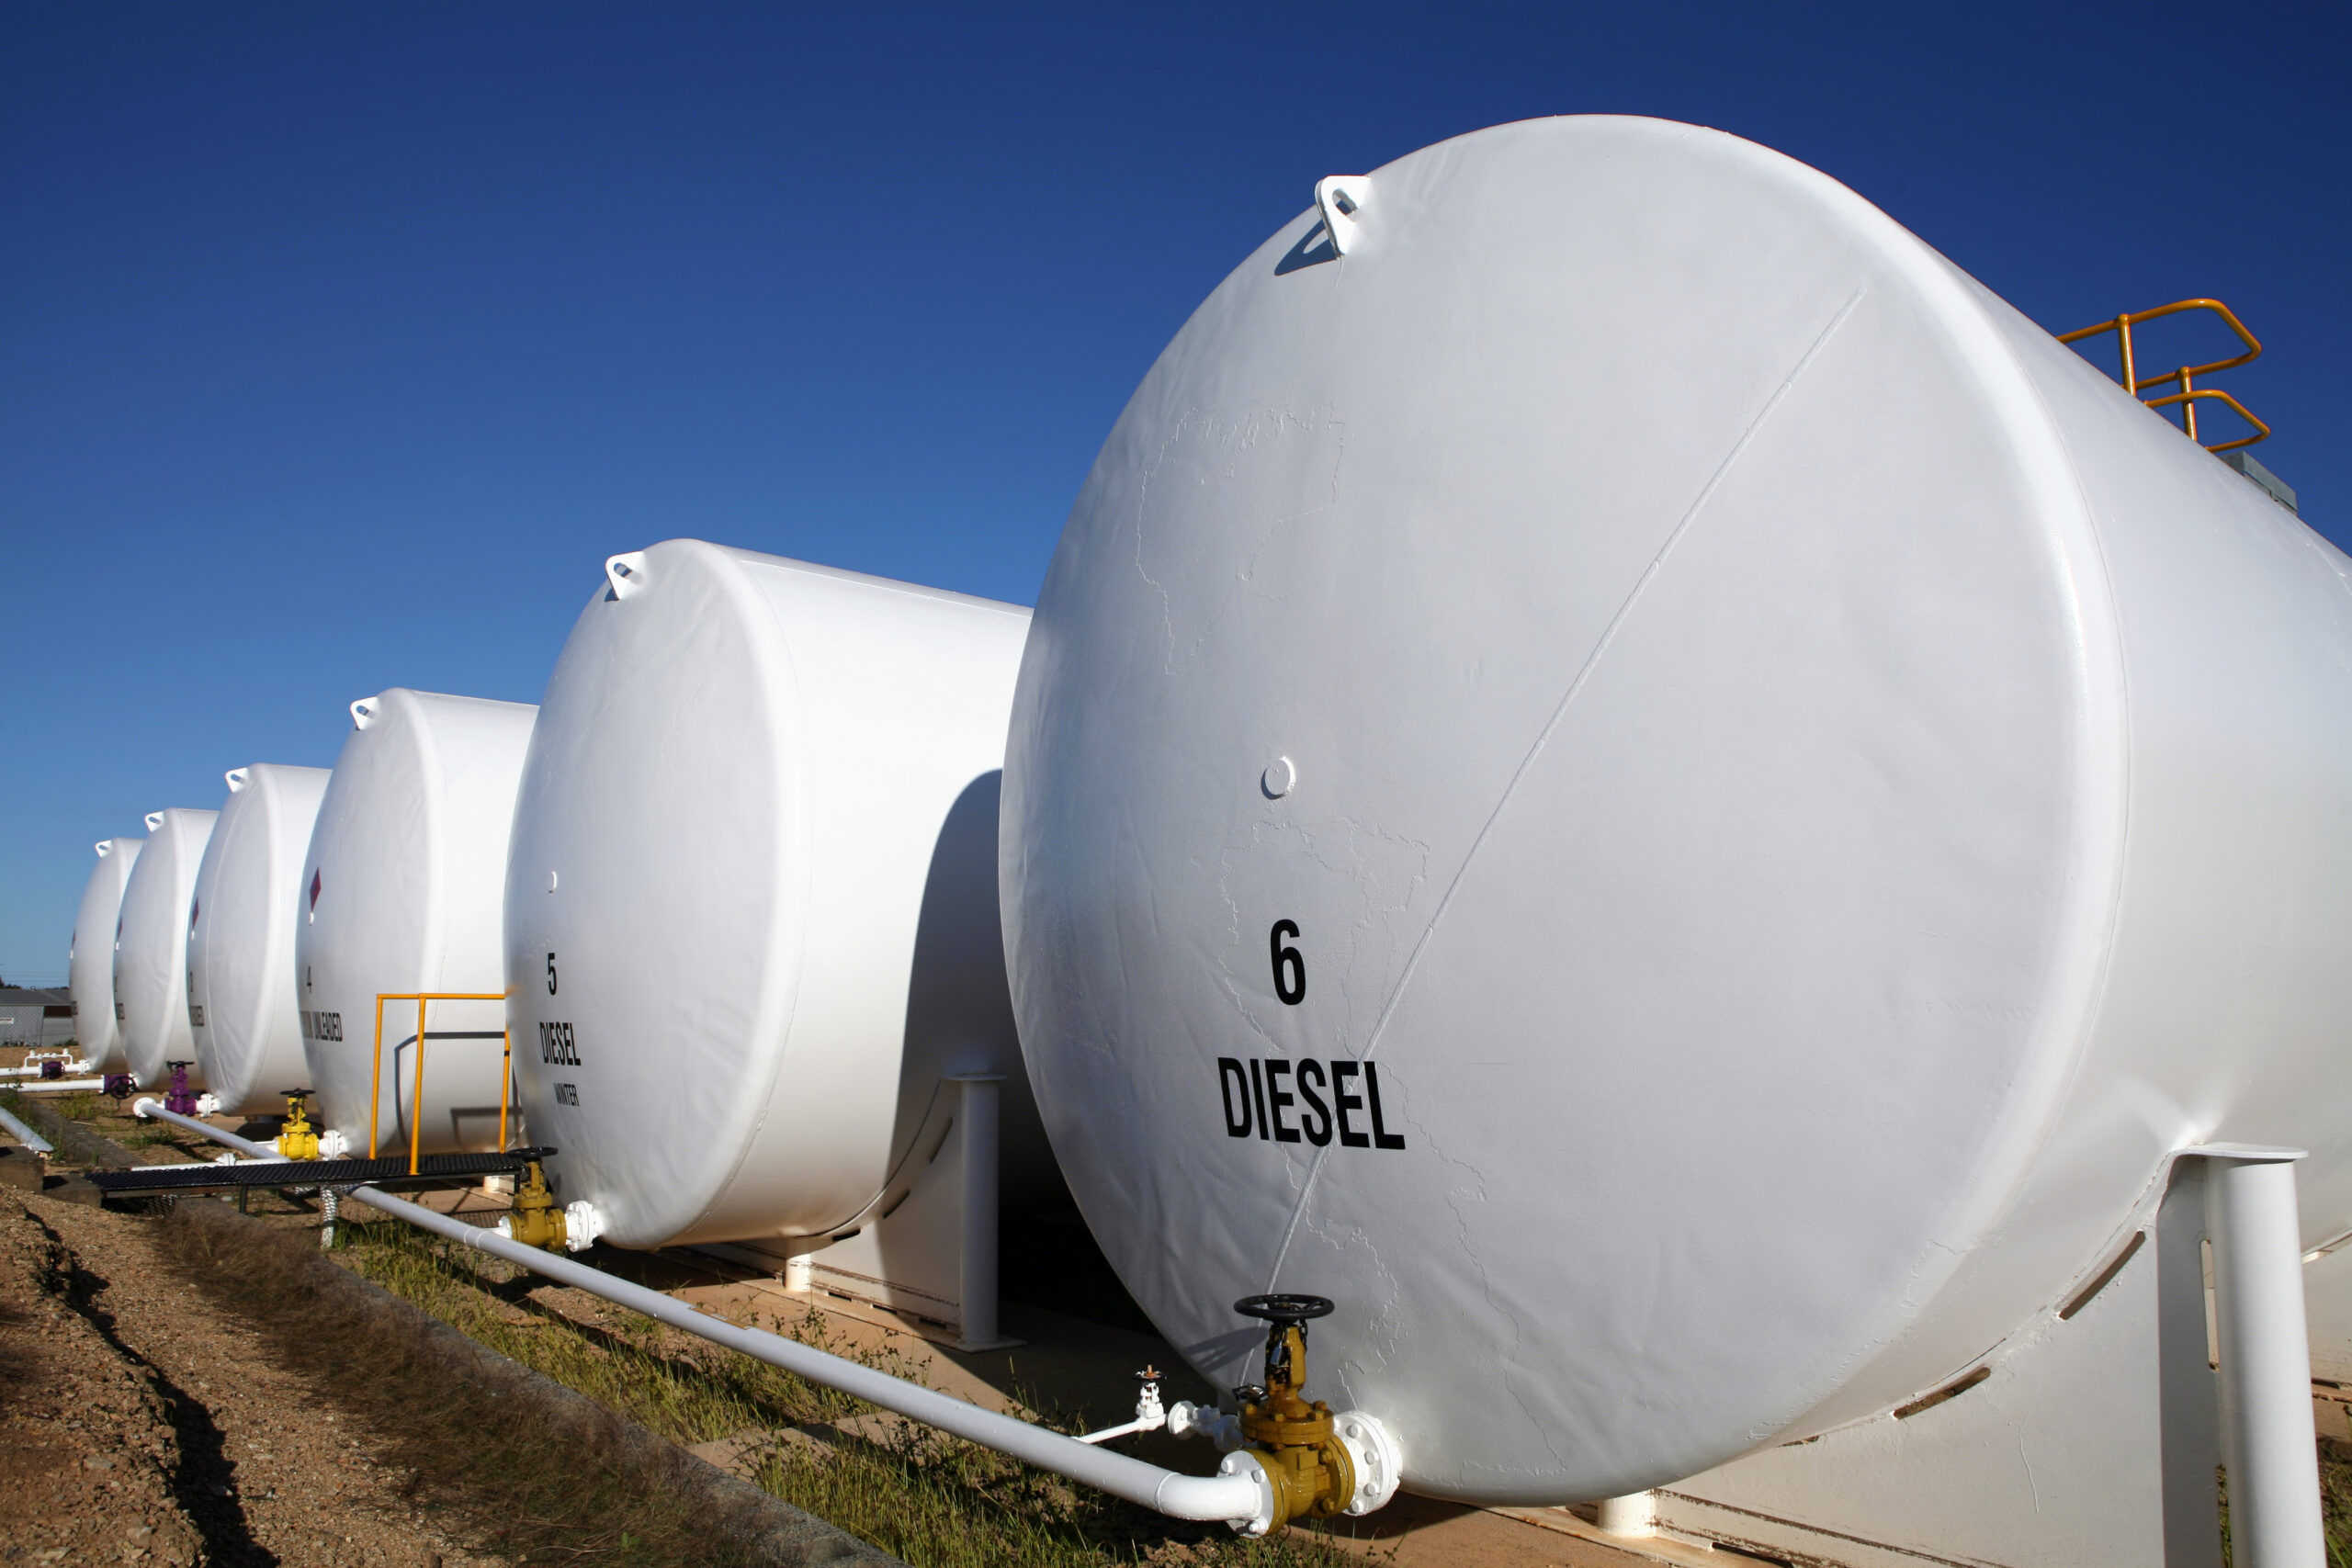 Storage Tanks treated with Actioil. Each Tank 60.000 Liters of Fuel